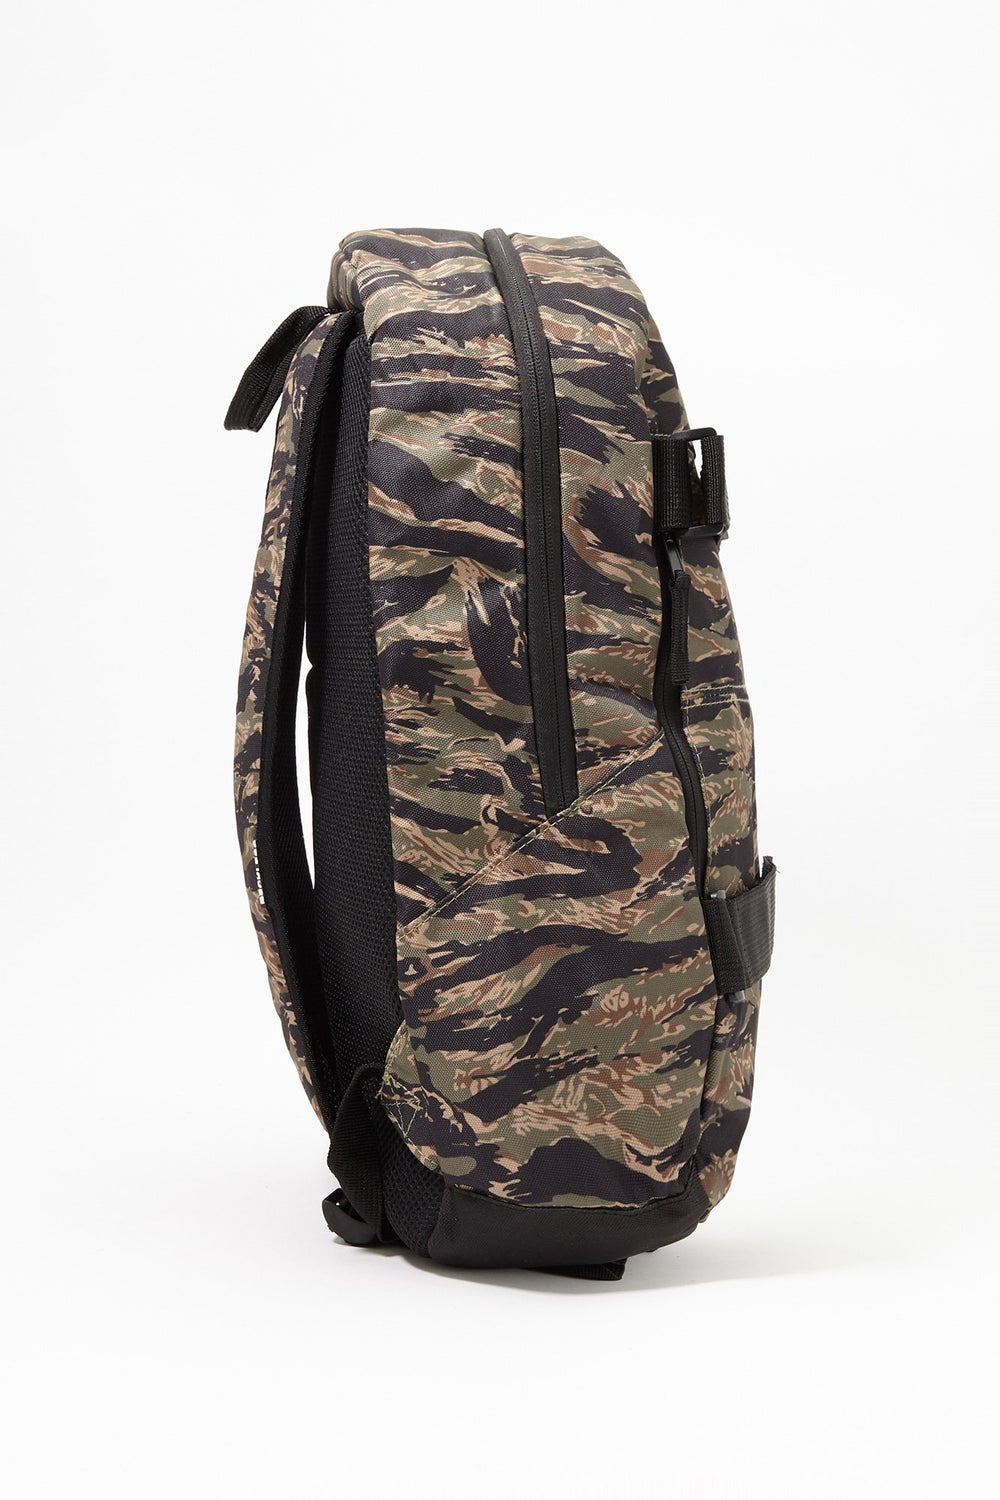 Young & Reckless Camo Skateboard Backpack Camouflage